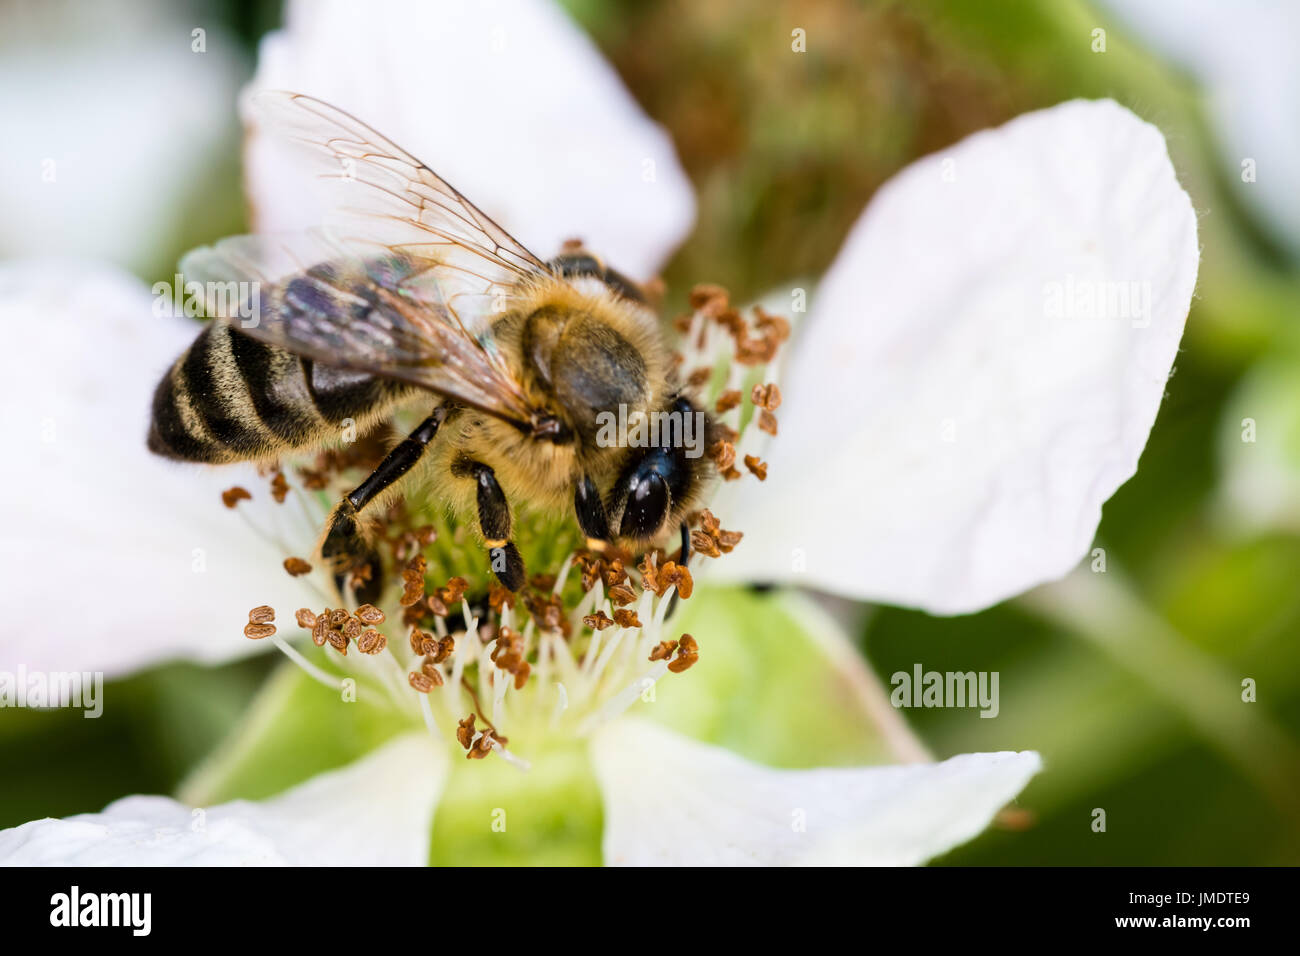 The European bee pollinating a white small flower in the spring meadow. Macro shot with dark blurry background. Stock Photo